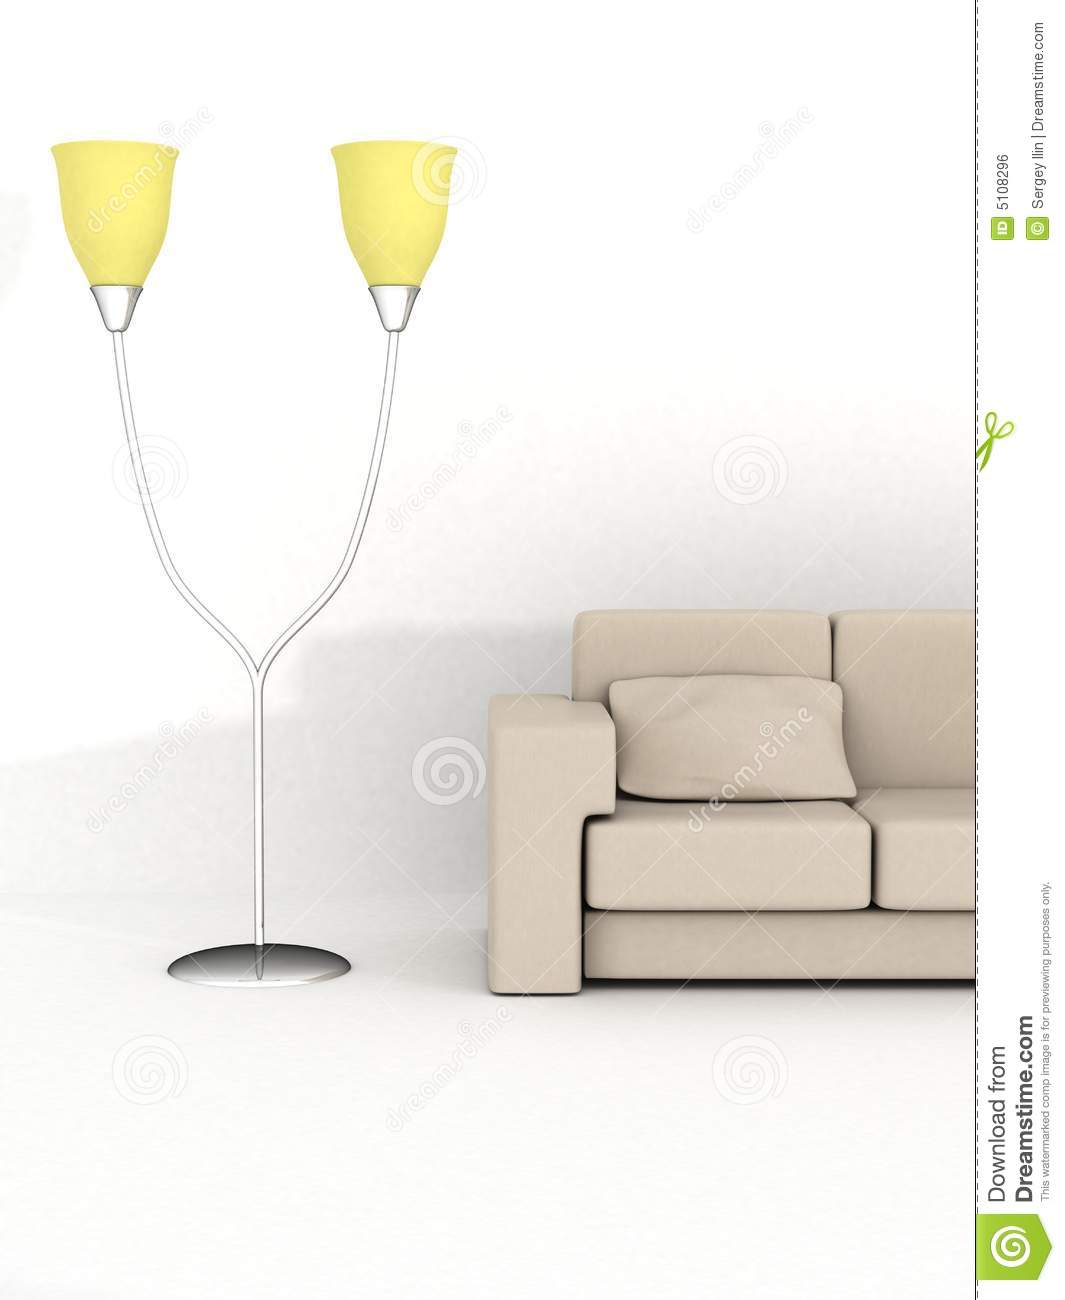 sofa floor lamp bed pull out frame and royalty free stock image 5108296